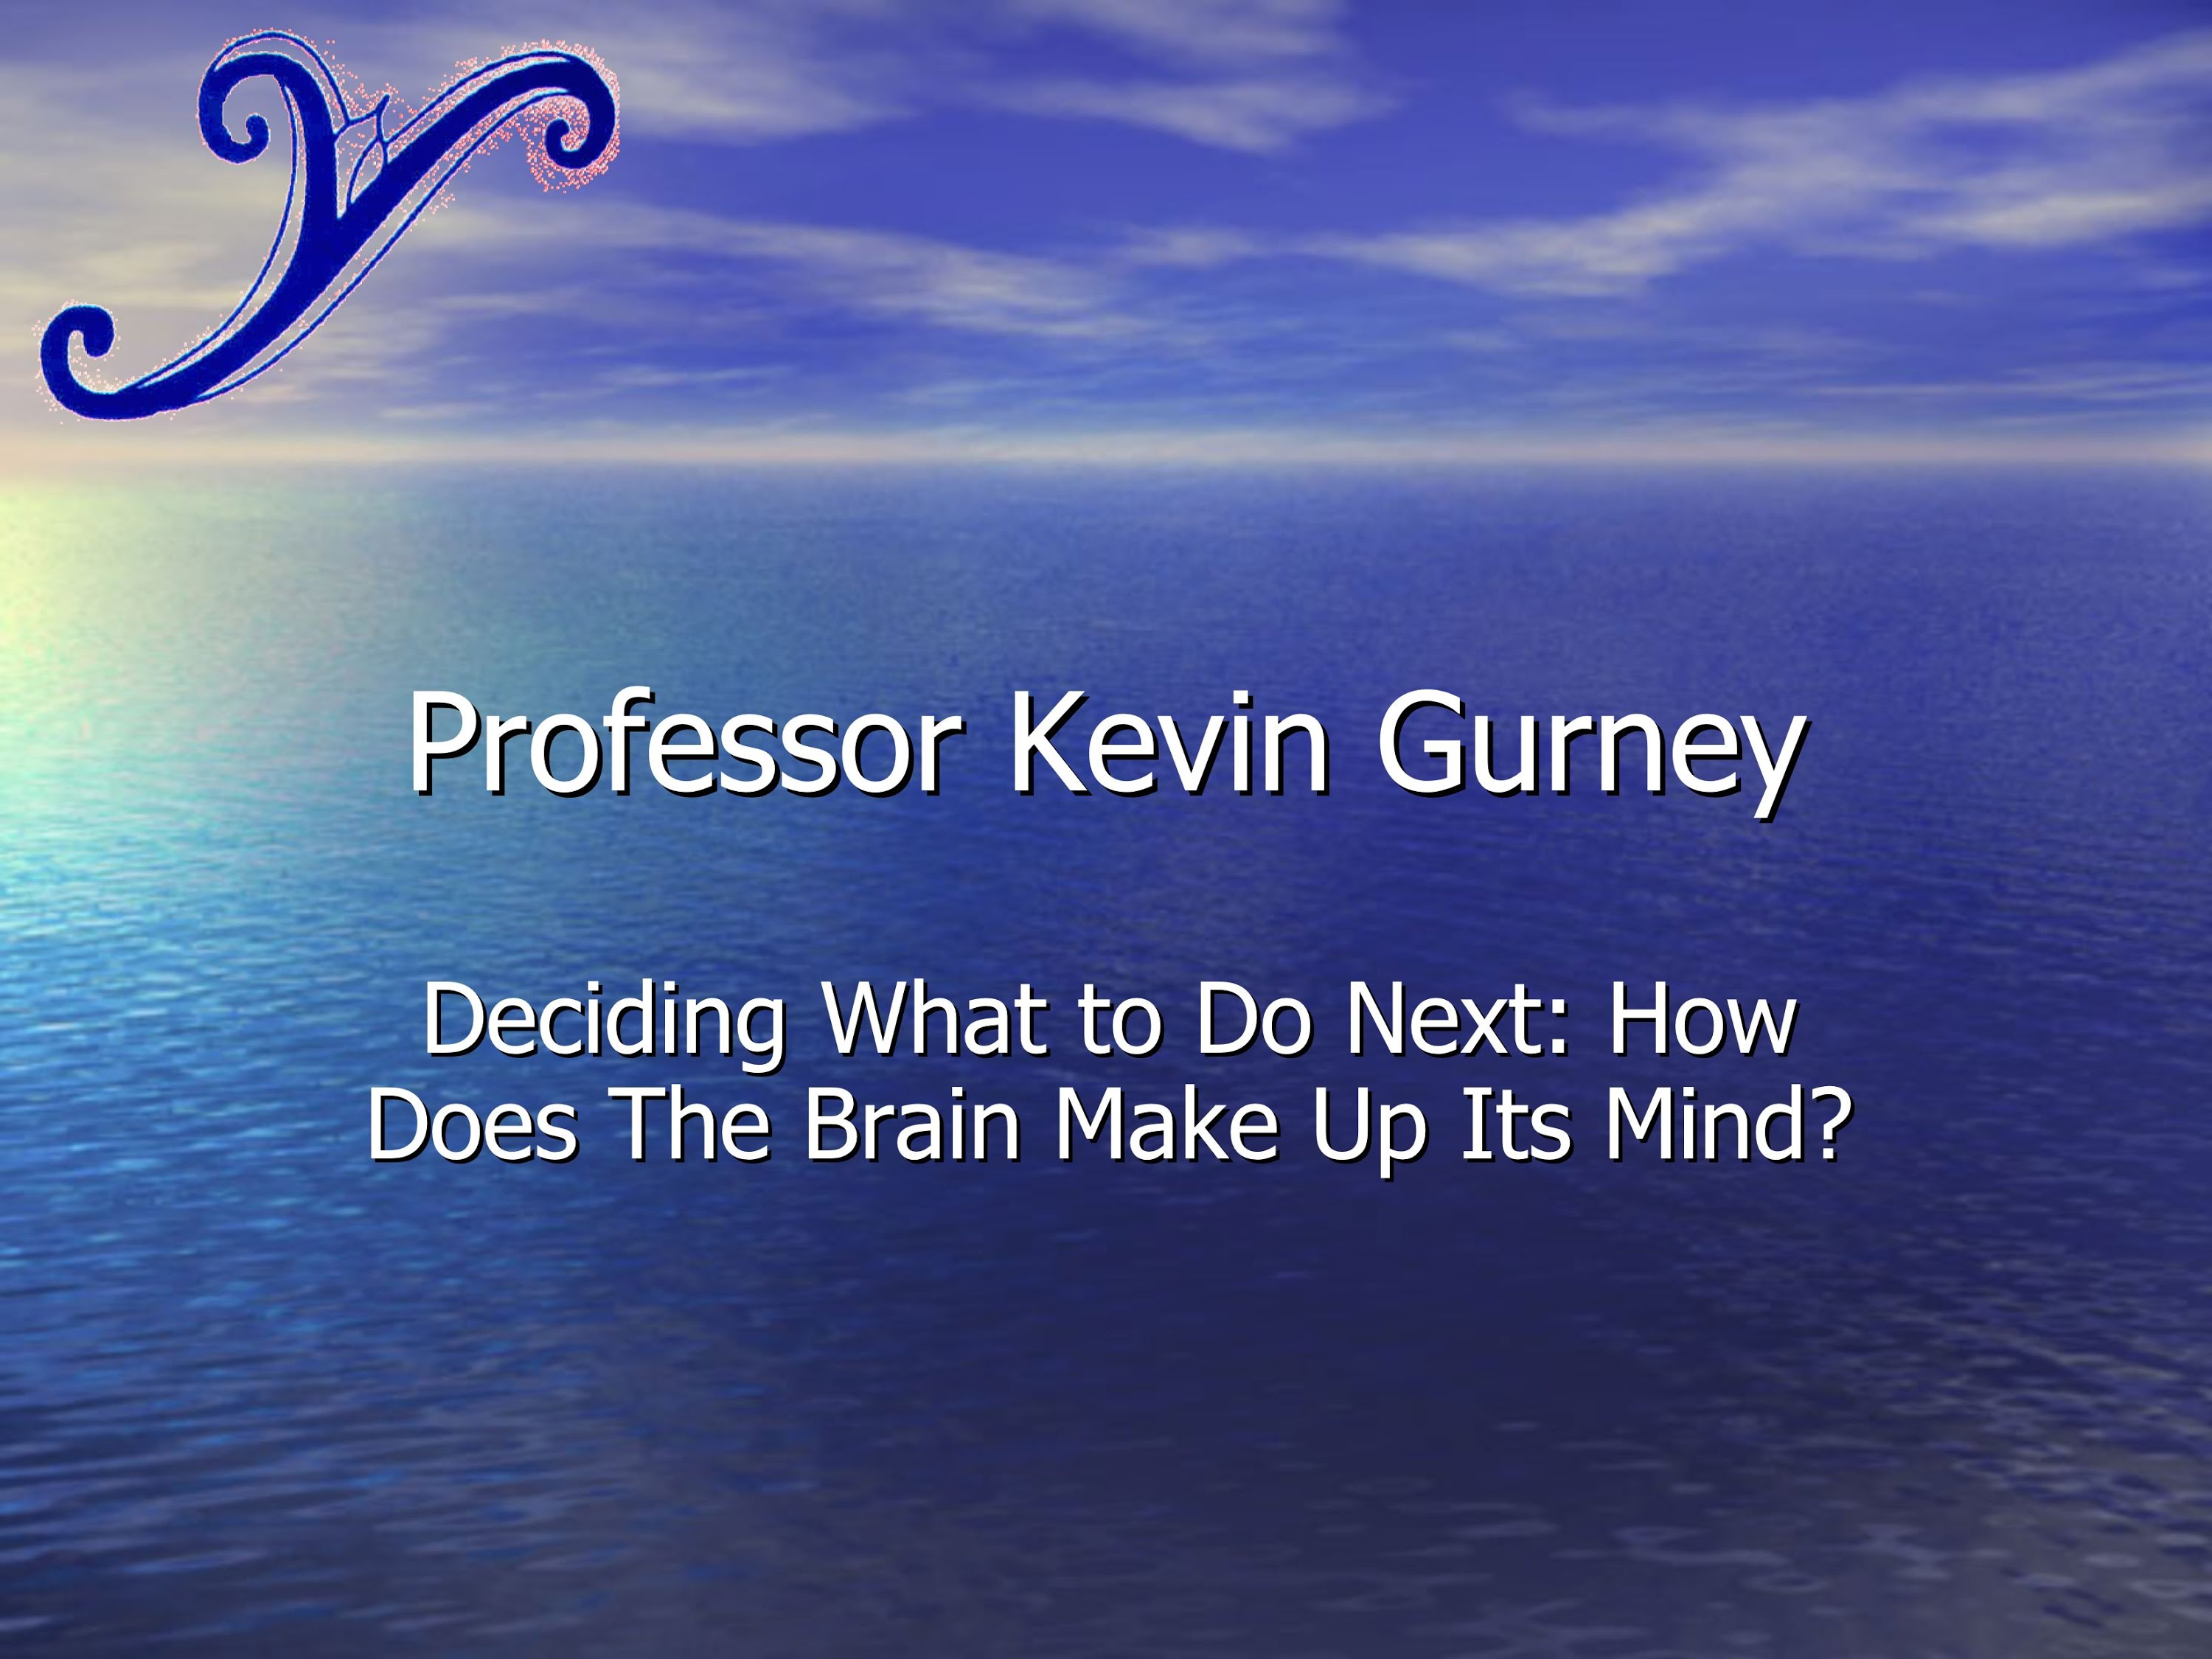 Professor Kevin Gurney - How does the Brain Make up it's Mind